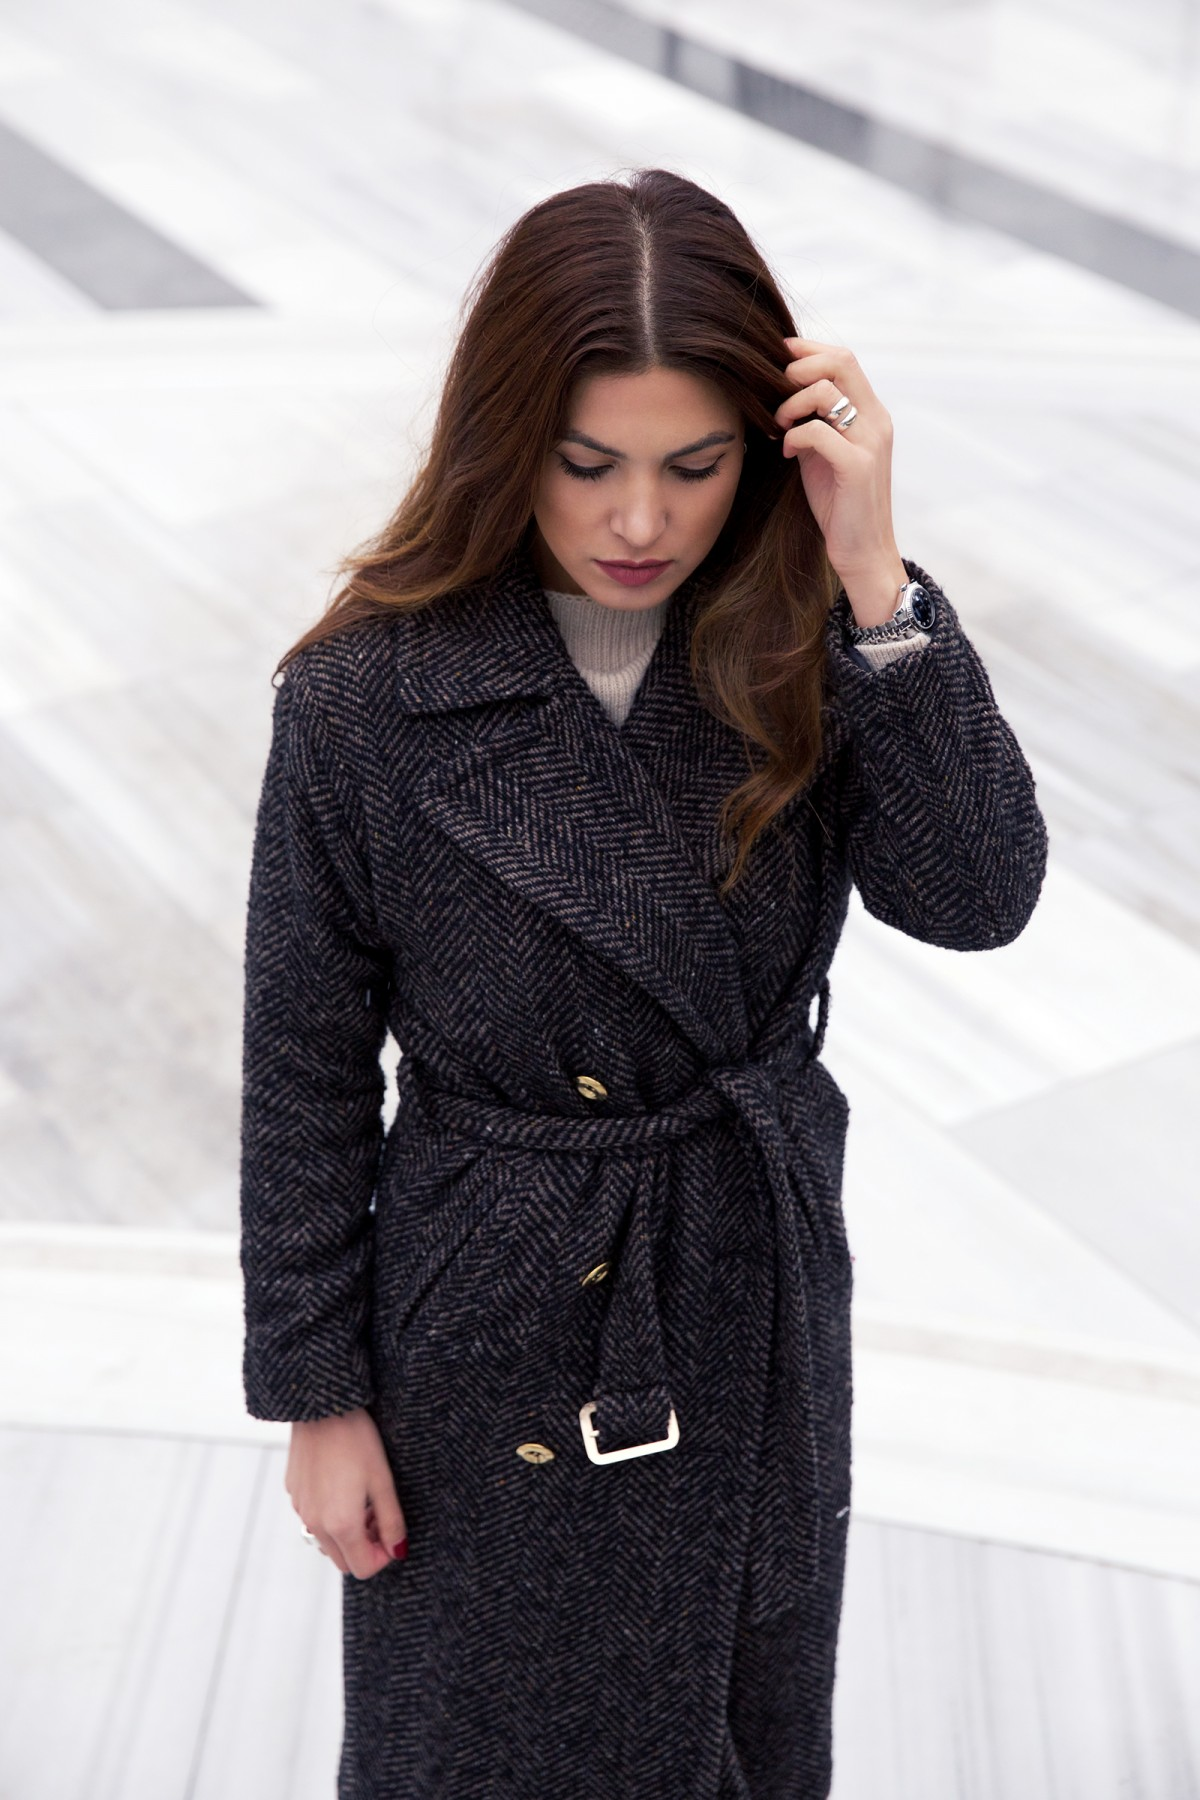 Negin Mirsalehi is wearing a dark grey herringbone robe coat from River Island